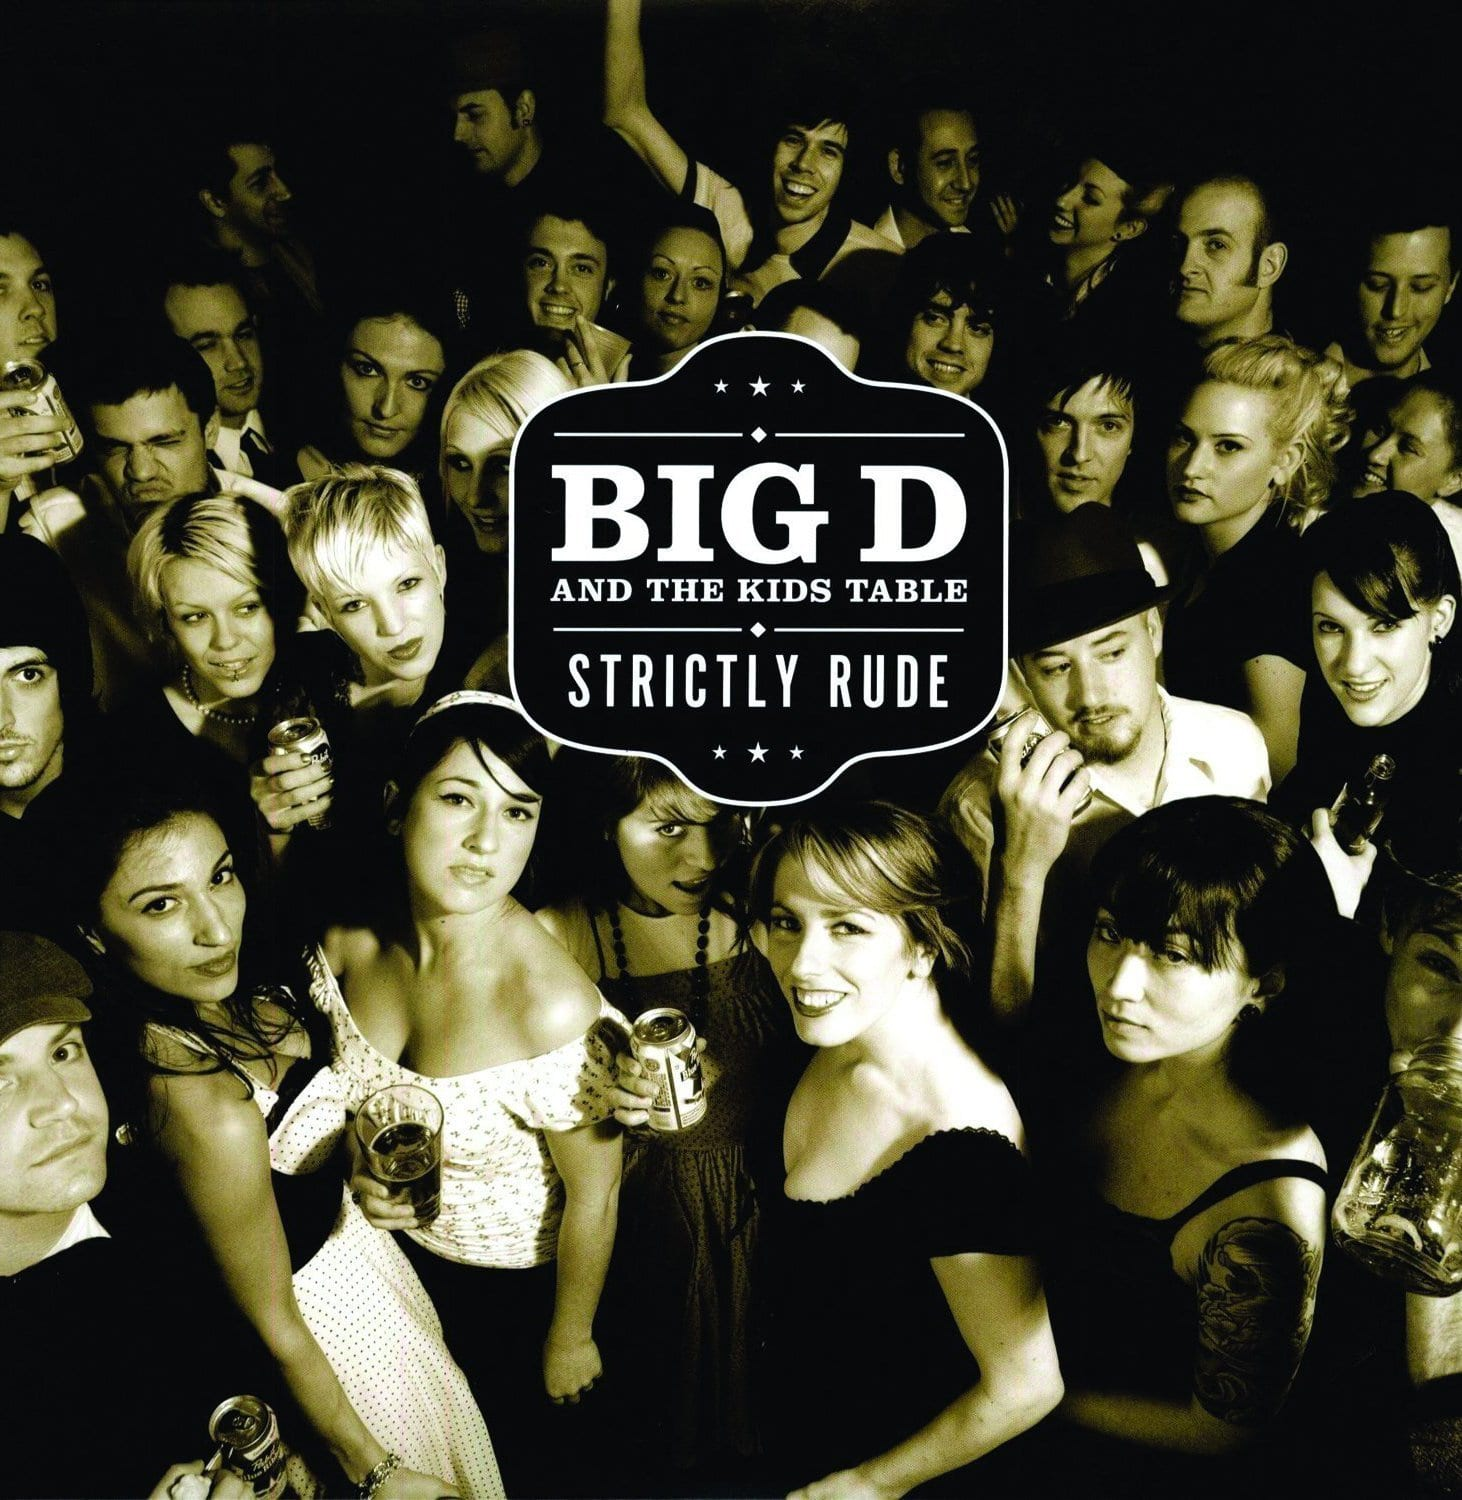 Big D And The Kids Table - Strictly Rude [2LP] (One Black And One White Colored Vinyl LP, SideOneDummy Records 20th Anniversary, gatefold, download, limited) - Urban Vinyl | Records, Headphones, and more.